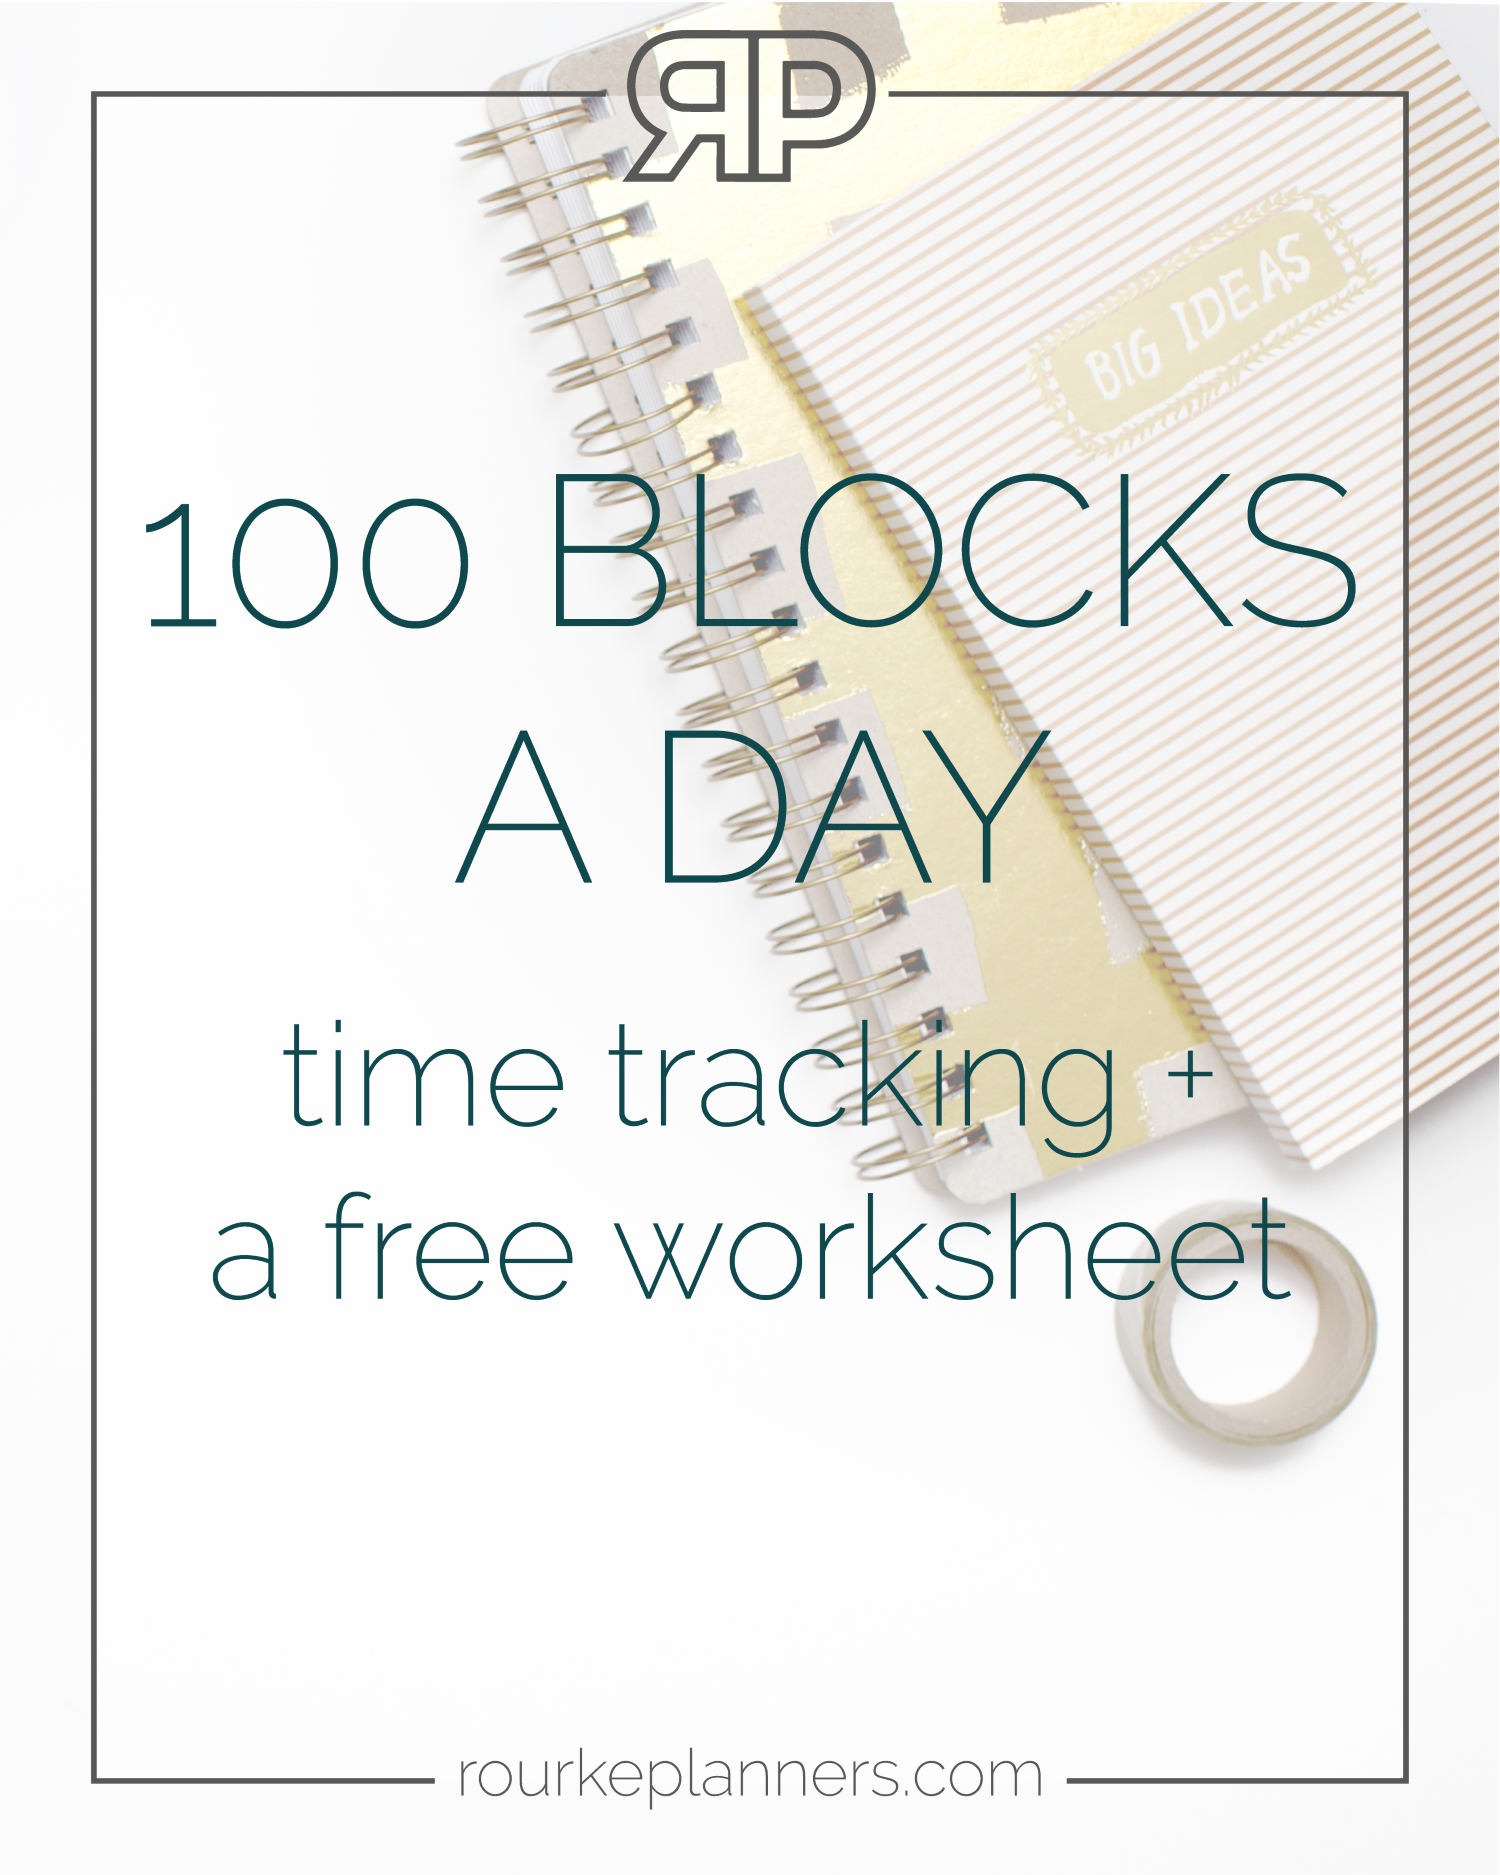 100 Blocks a Day   Rourke Planners